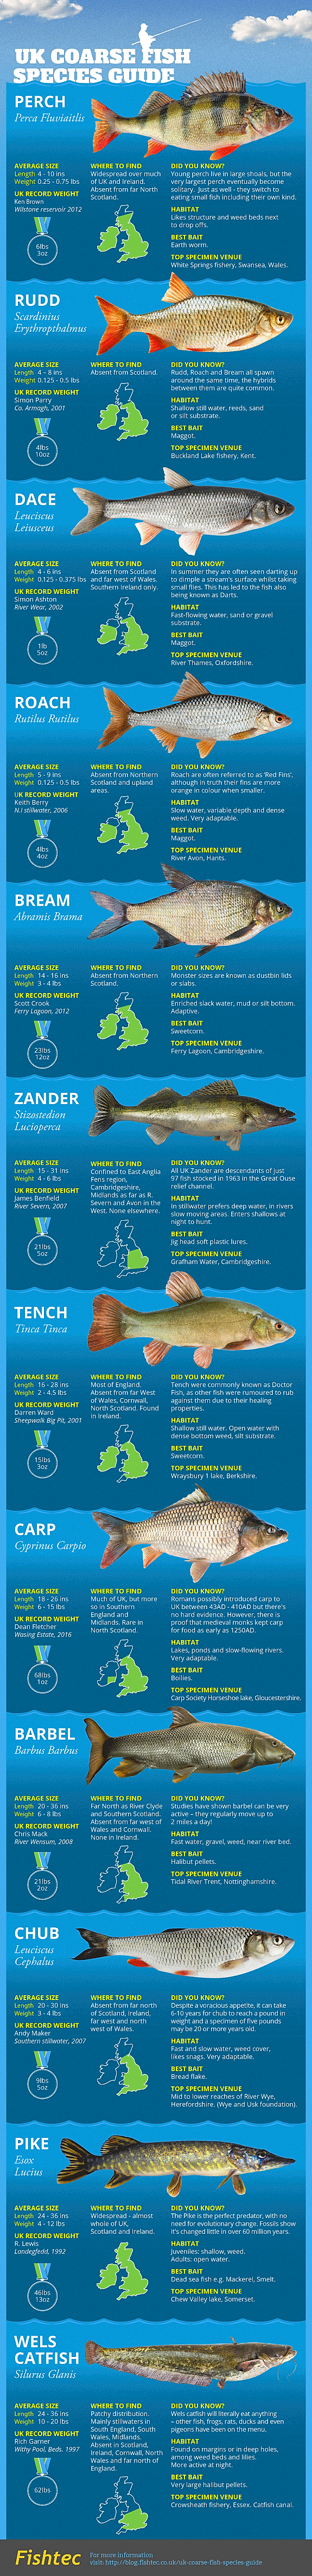 Guide to Coarse Fish Species